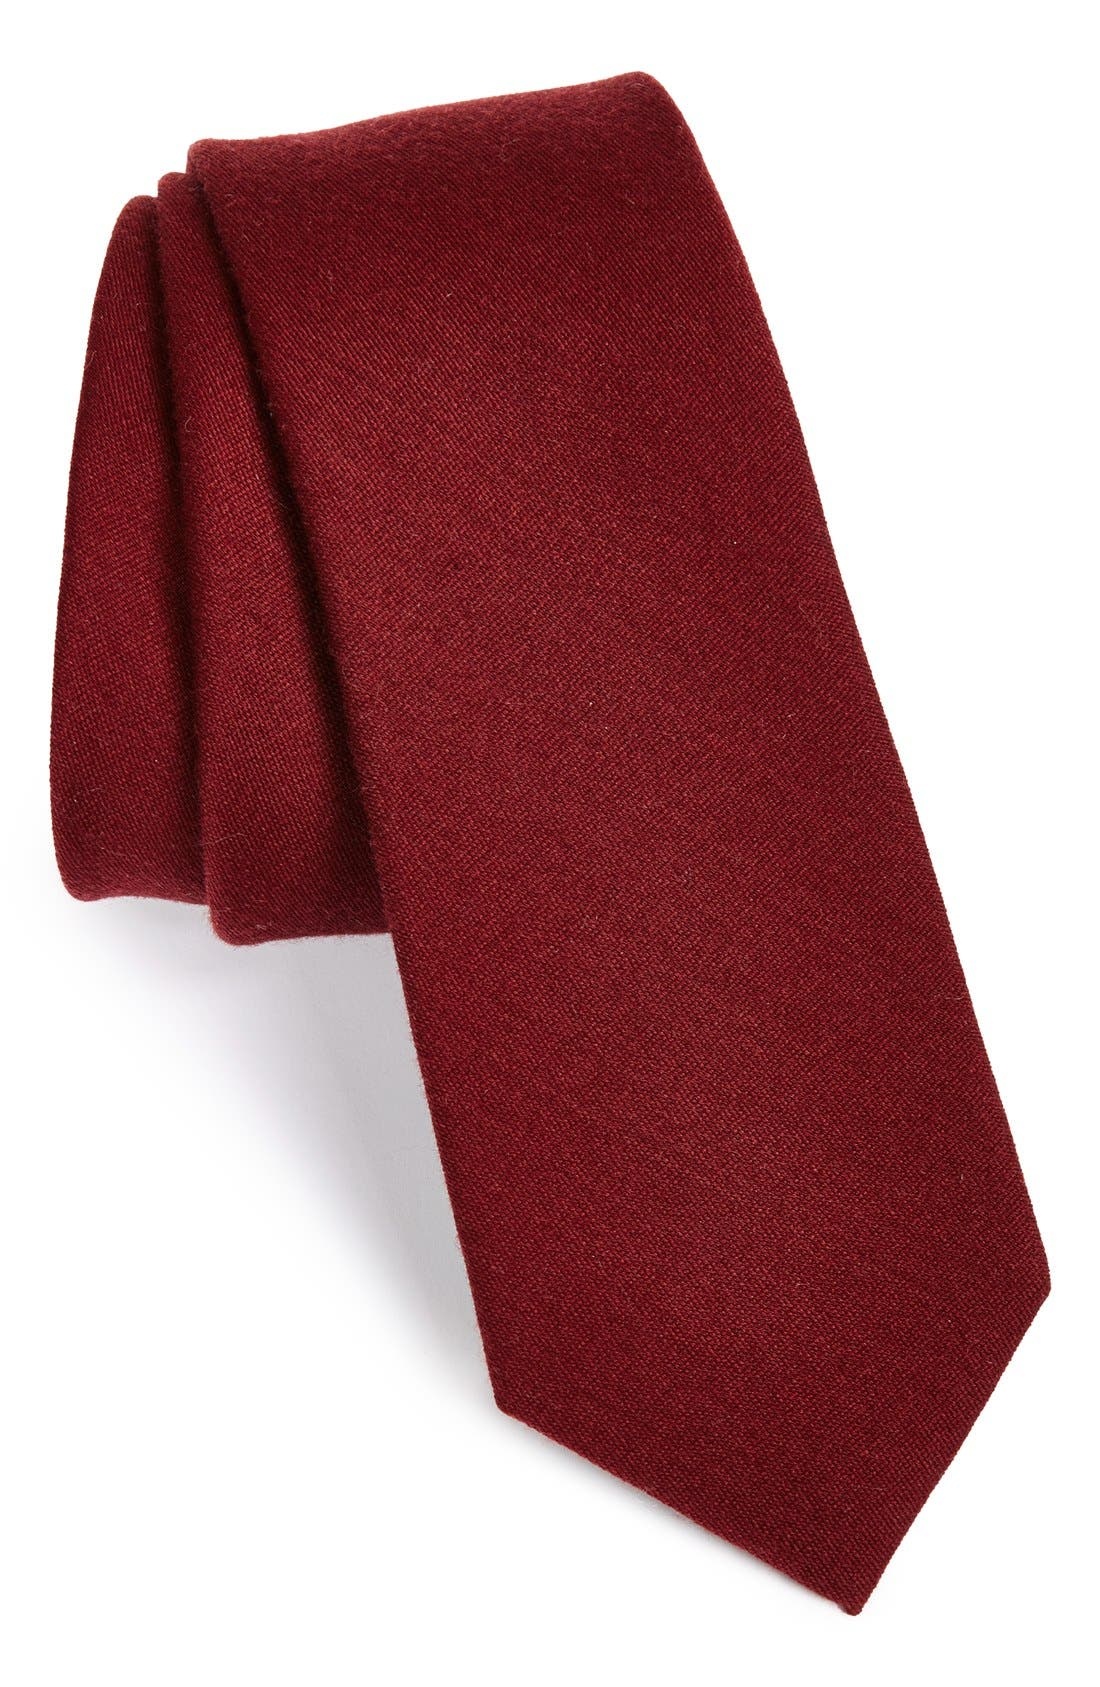 Main Image - The Tie Bar Wool & Silk Solid Tie (Online Only)